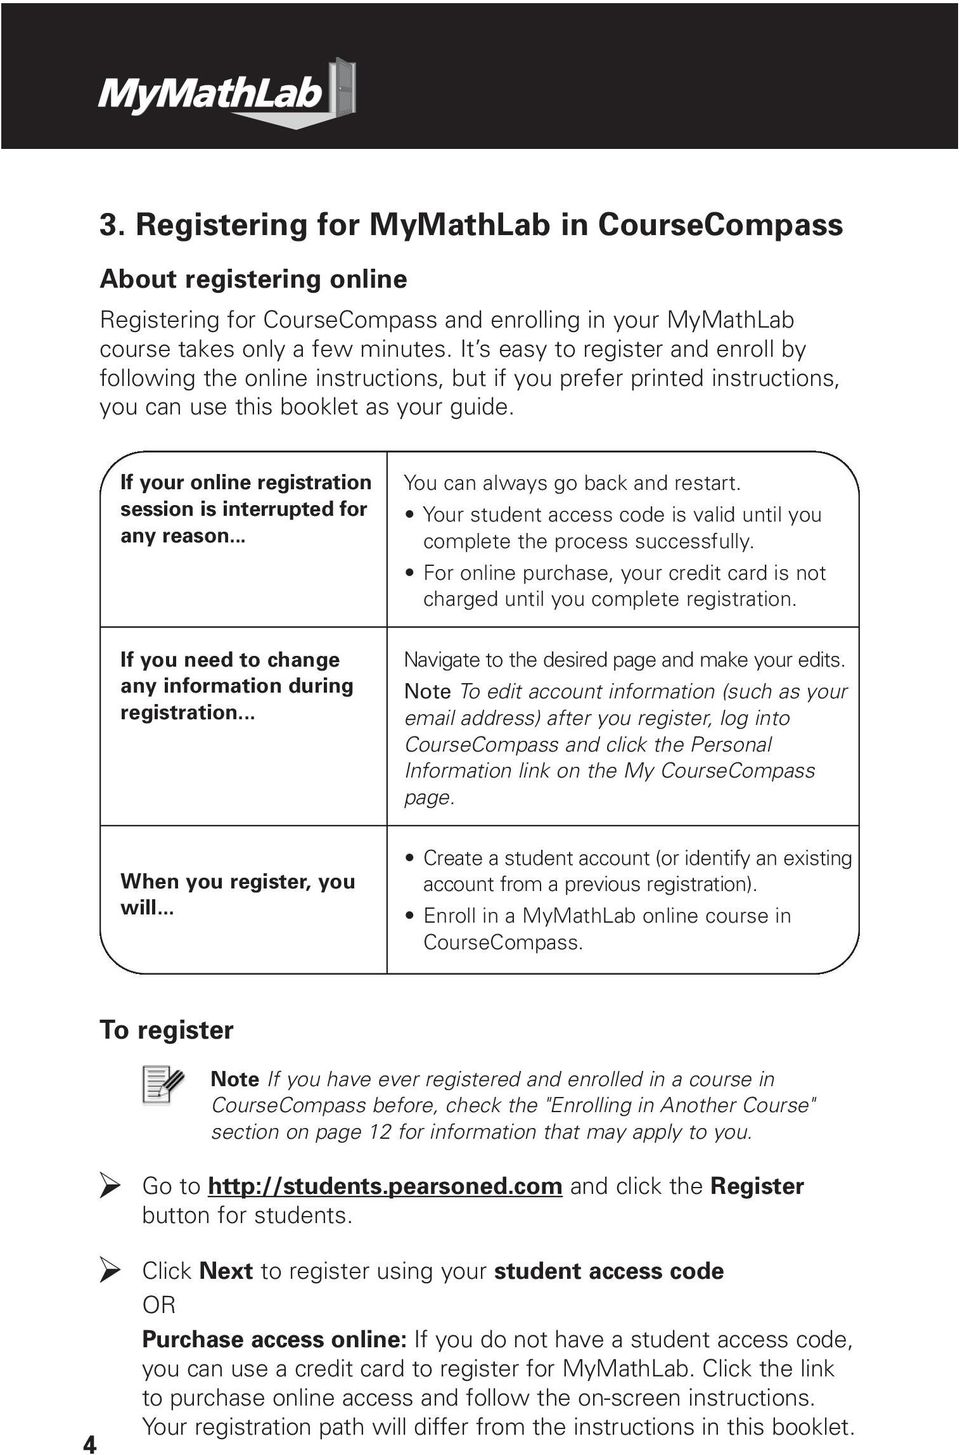 If your online registration session is interrupted for any reason... You can always go back and restart. Your student access code is valid until you complete the process successfully.